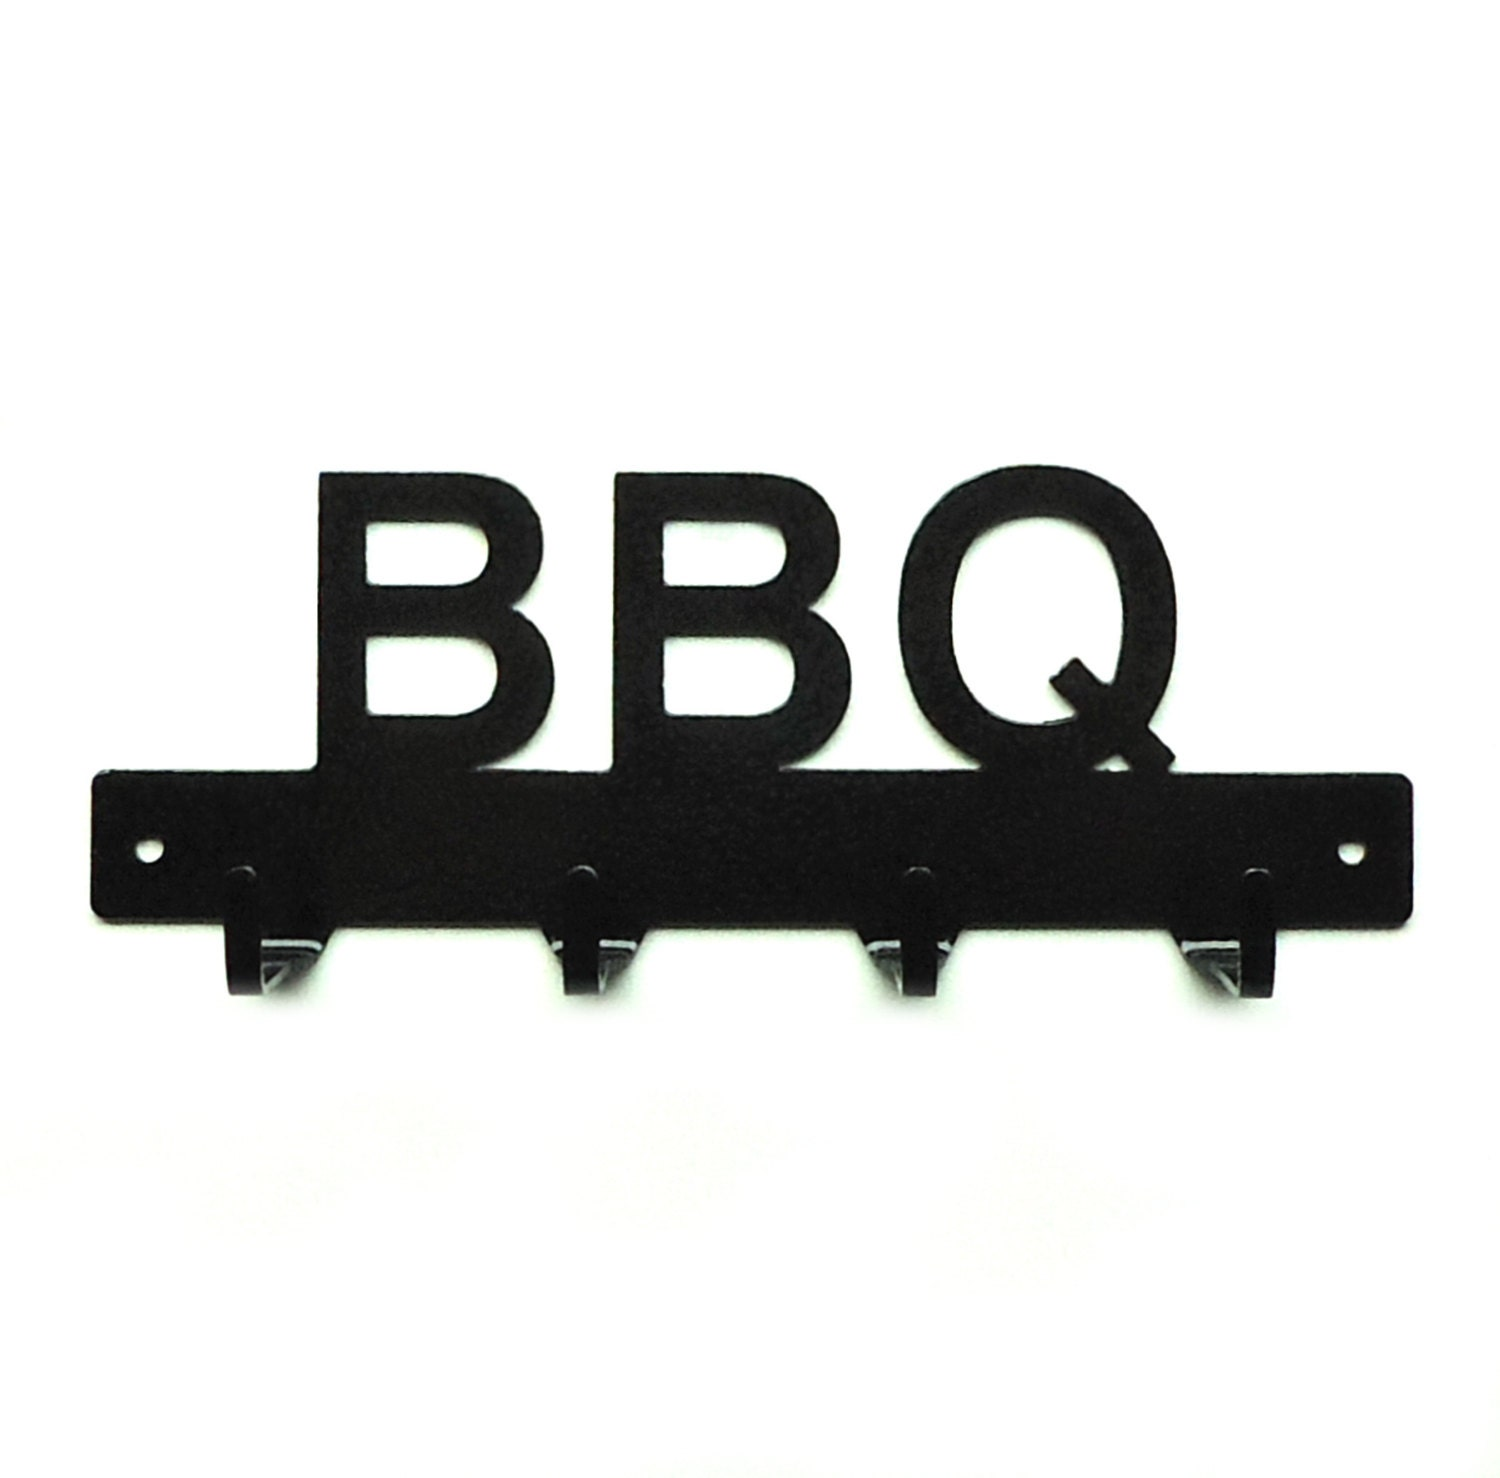 bbq grill utensil metal art rack free usa shipping. Black Bedroom Furniture Sets. Home Design Ideas